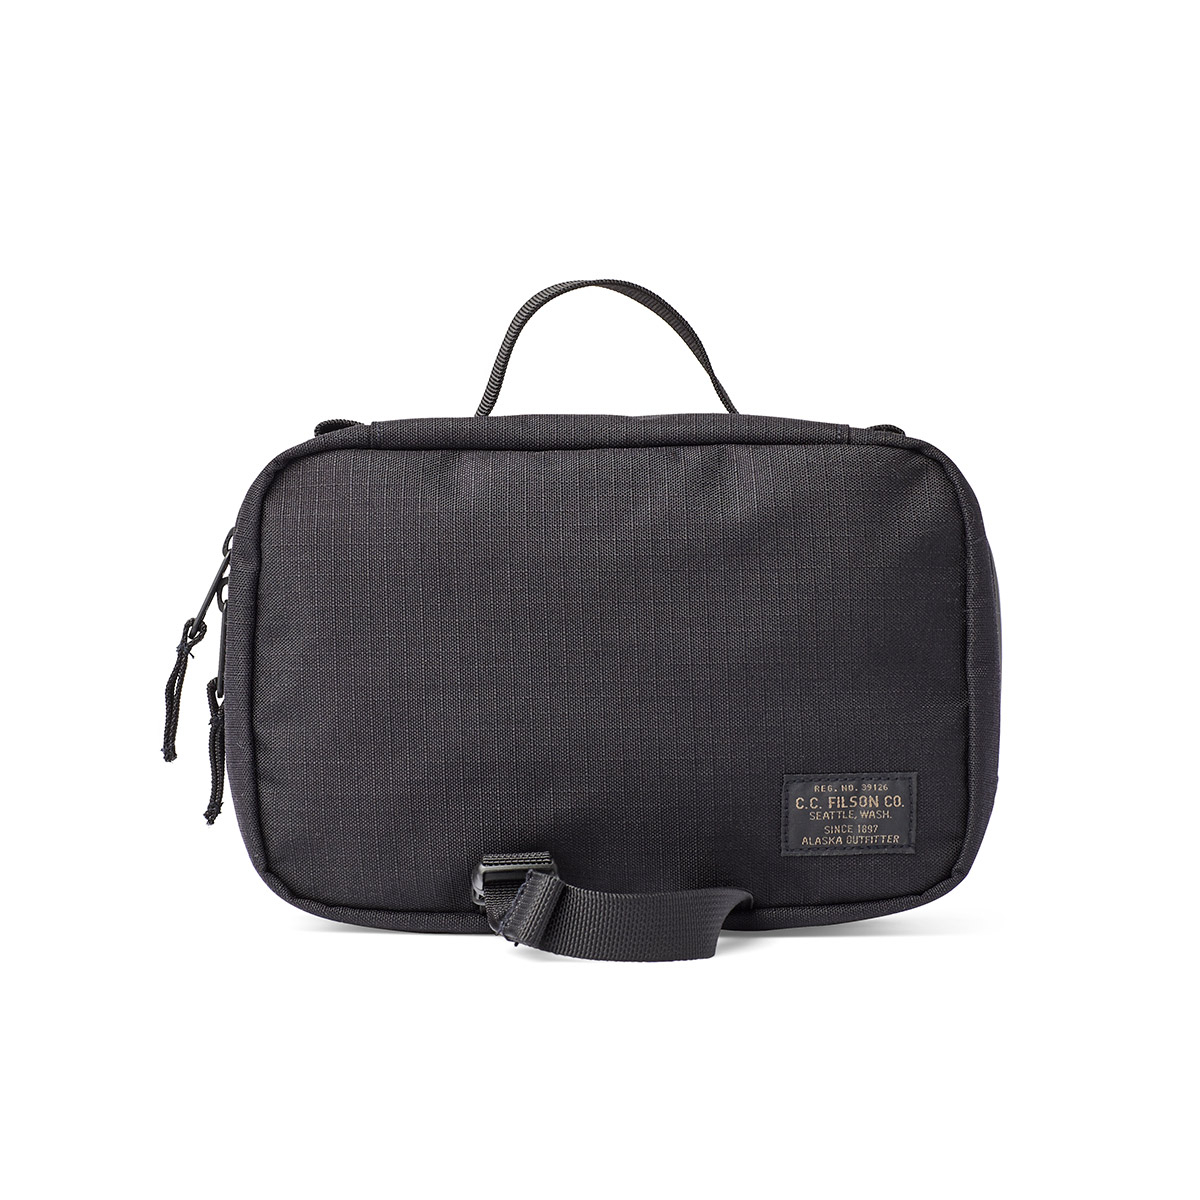 Filson Ripstop Nylon Travel Pack 20115936-Black